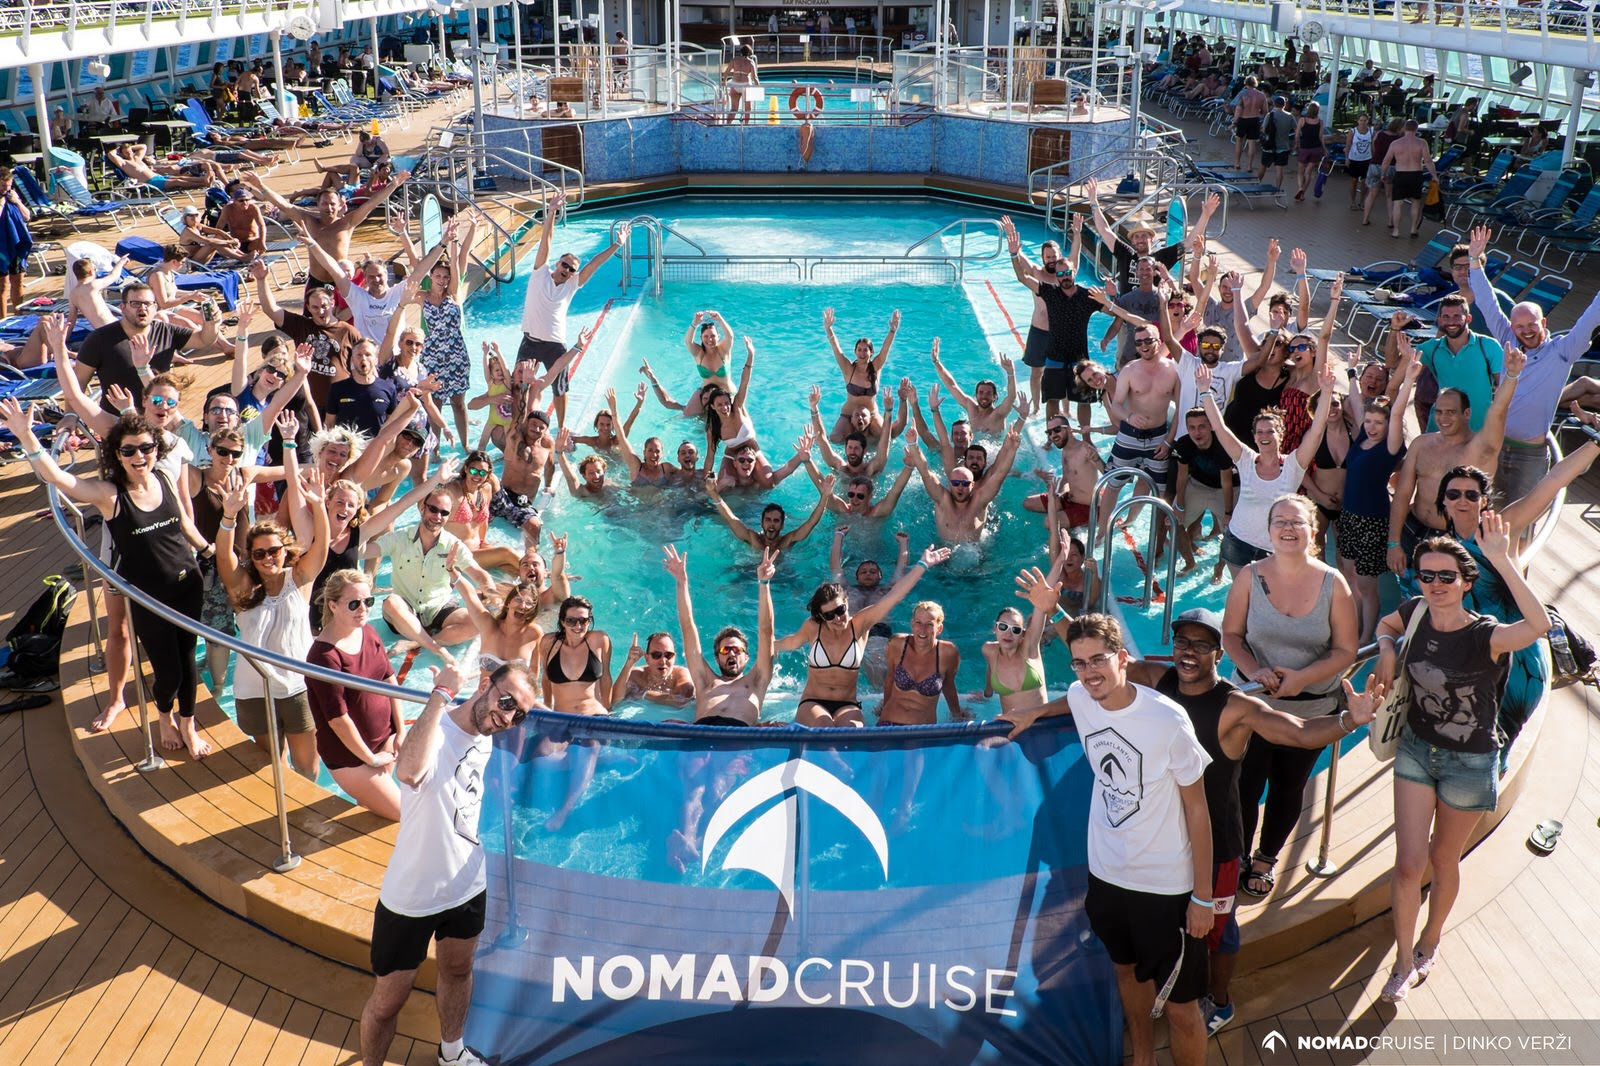 Nomad Cruise - Travel the World with Digital Nomads